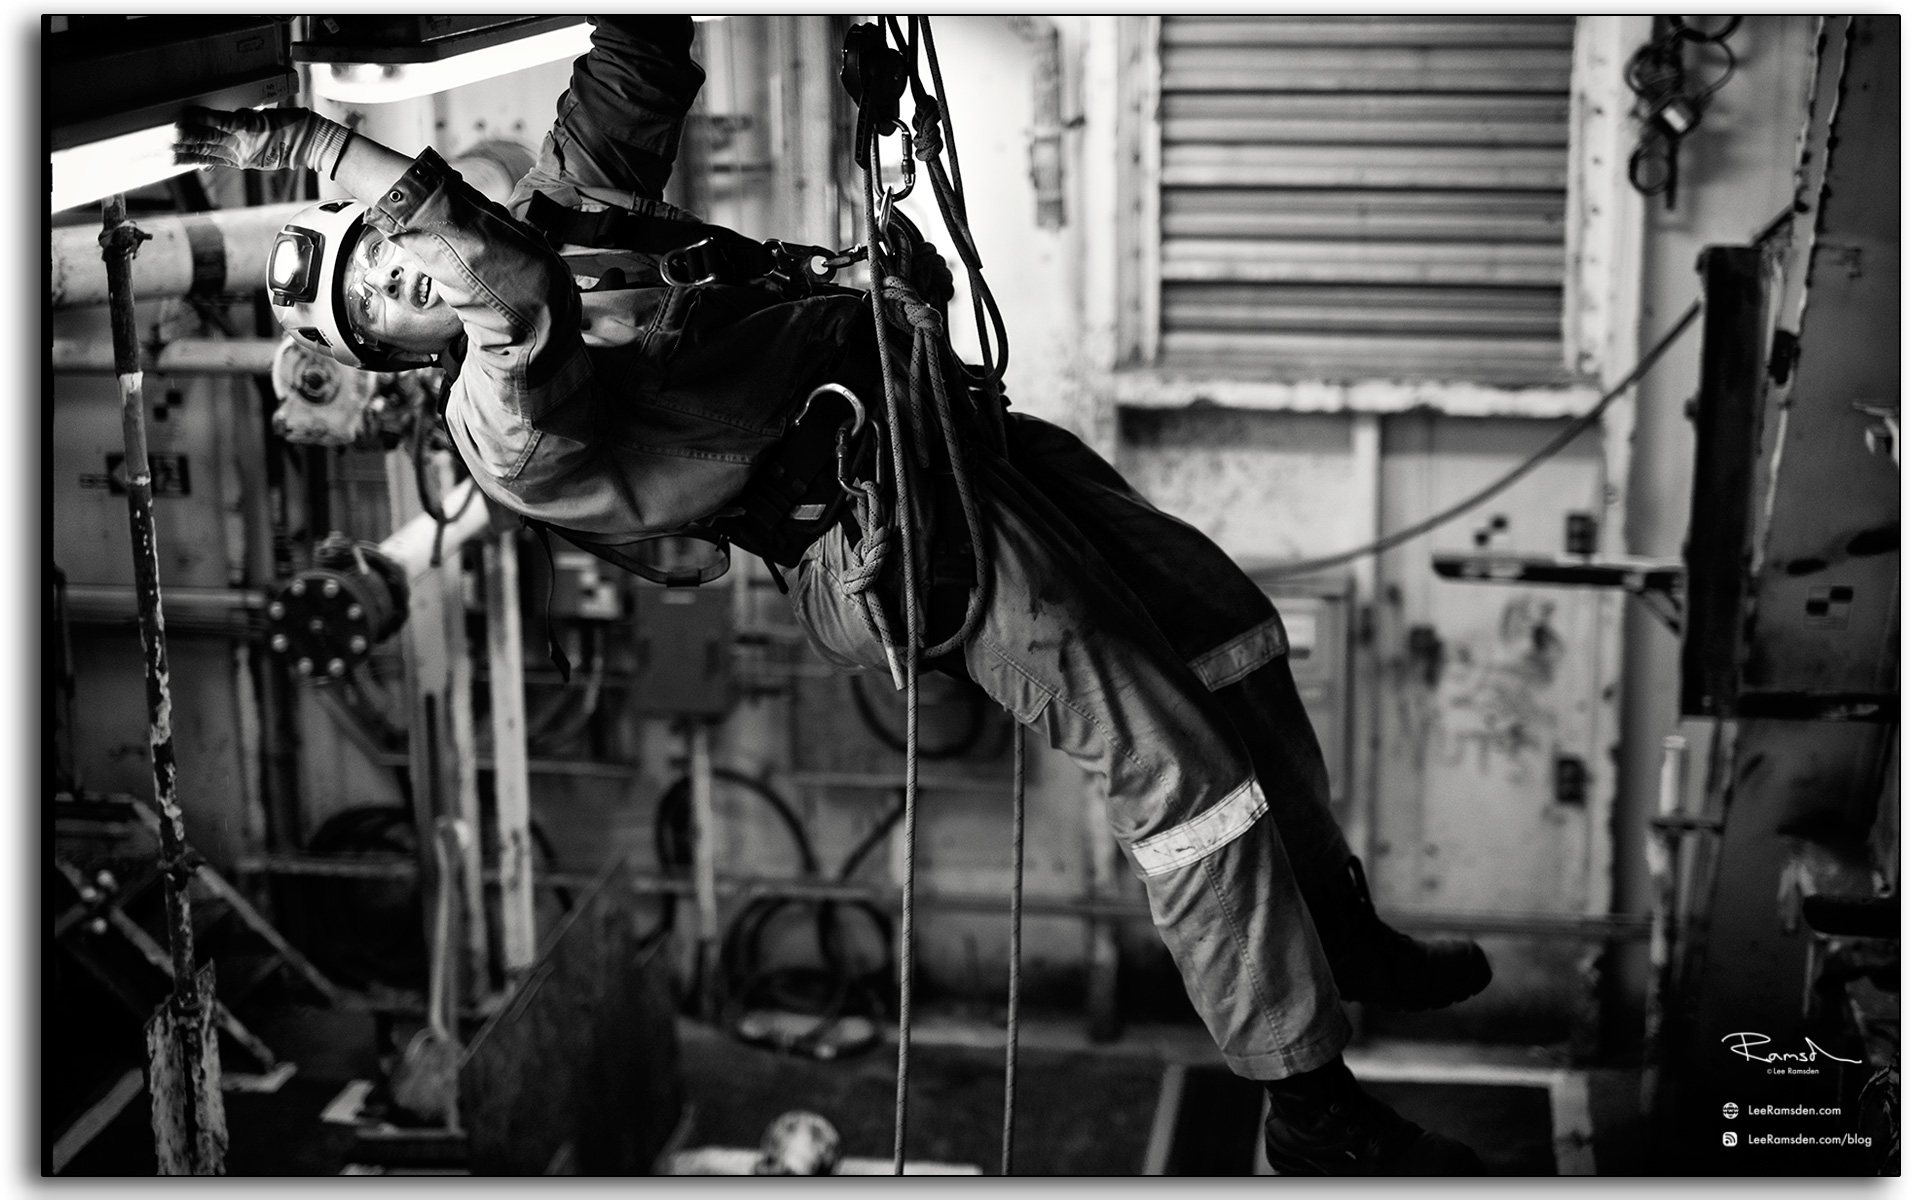 22 Electrical worker repairing a light fitting on an oil rig offshore in the north sea